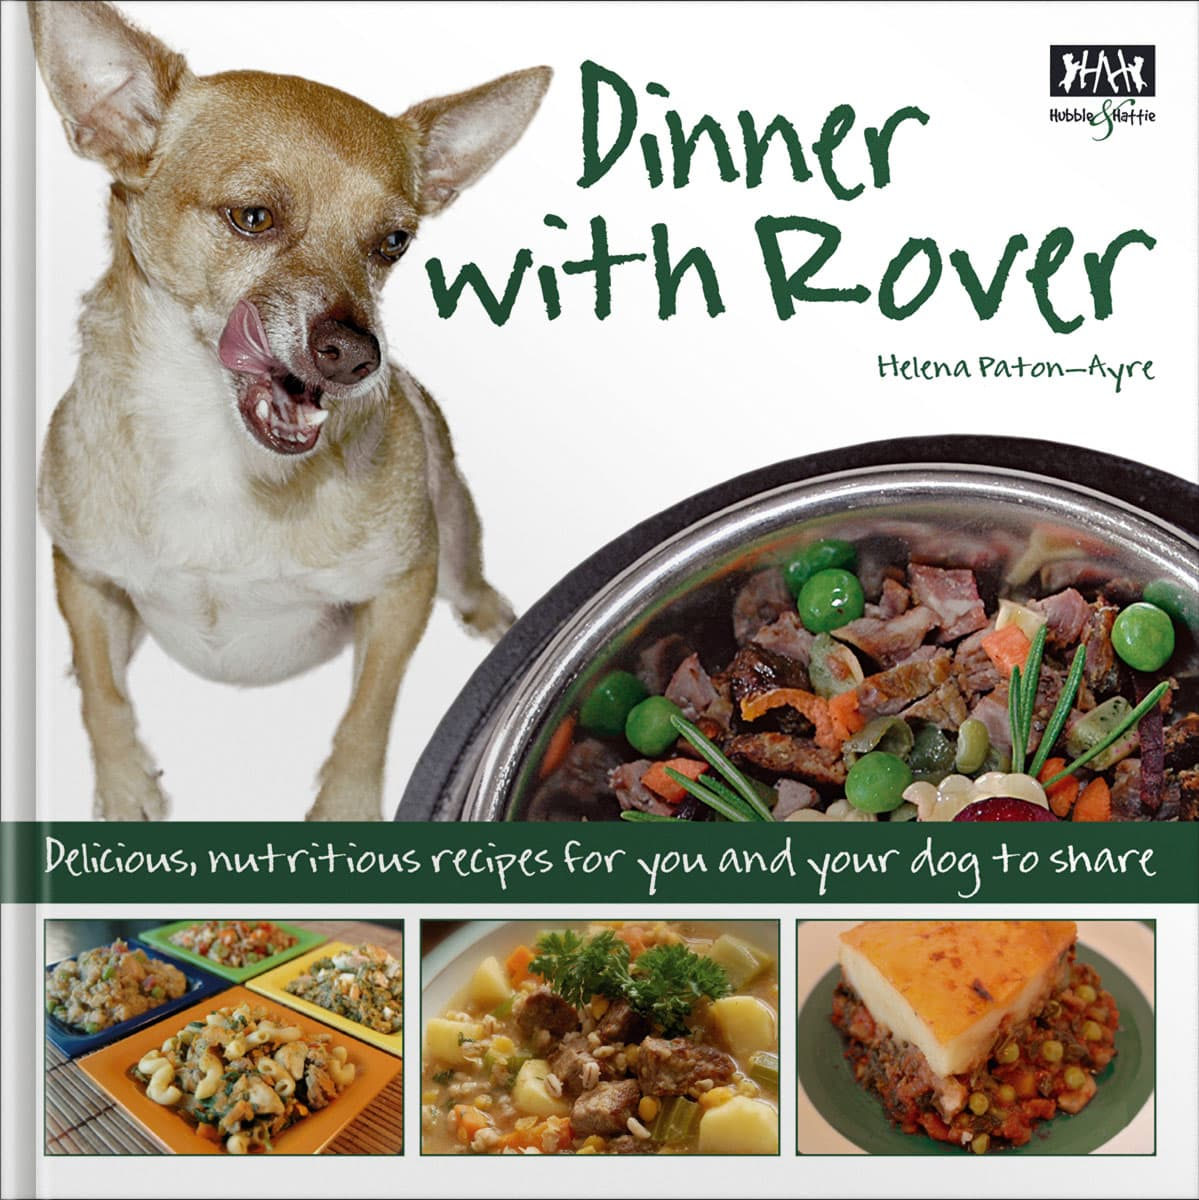 Dinner with Rover